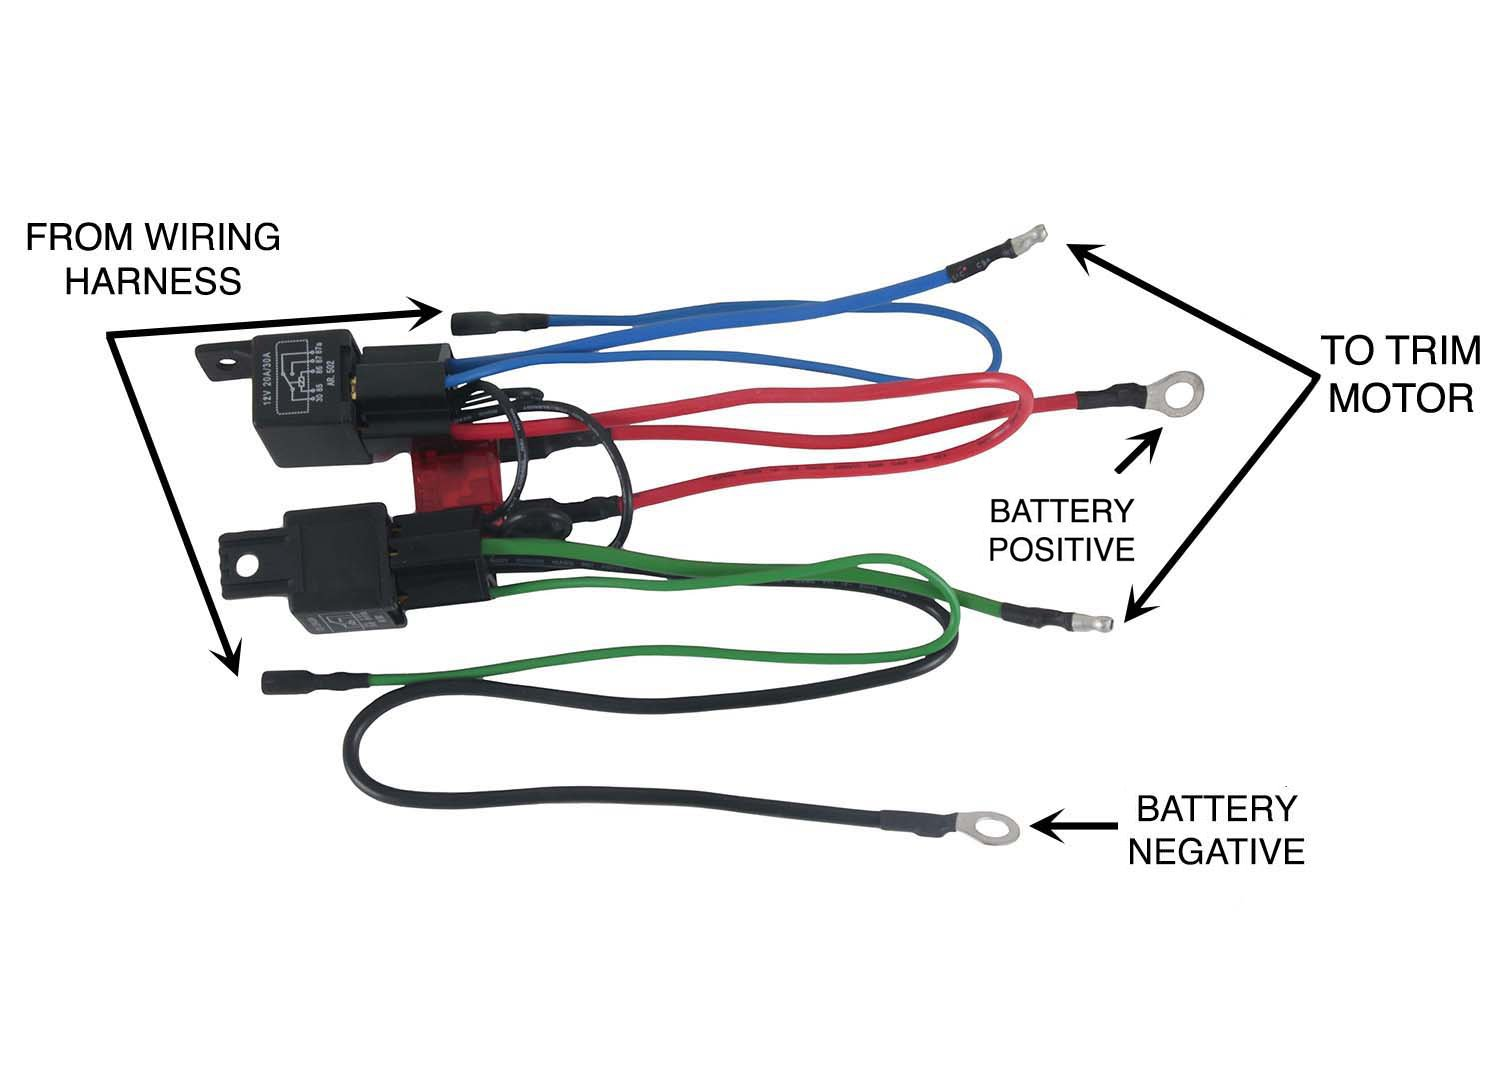 Amazon.com: NEW WIRING HARNESS FITS MERCURY MARINE TILT TRIM MOTORS on connectors 3 prong, fuse 3 prong, plug 3 prong,